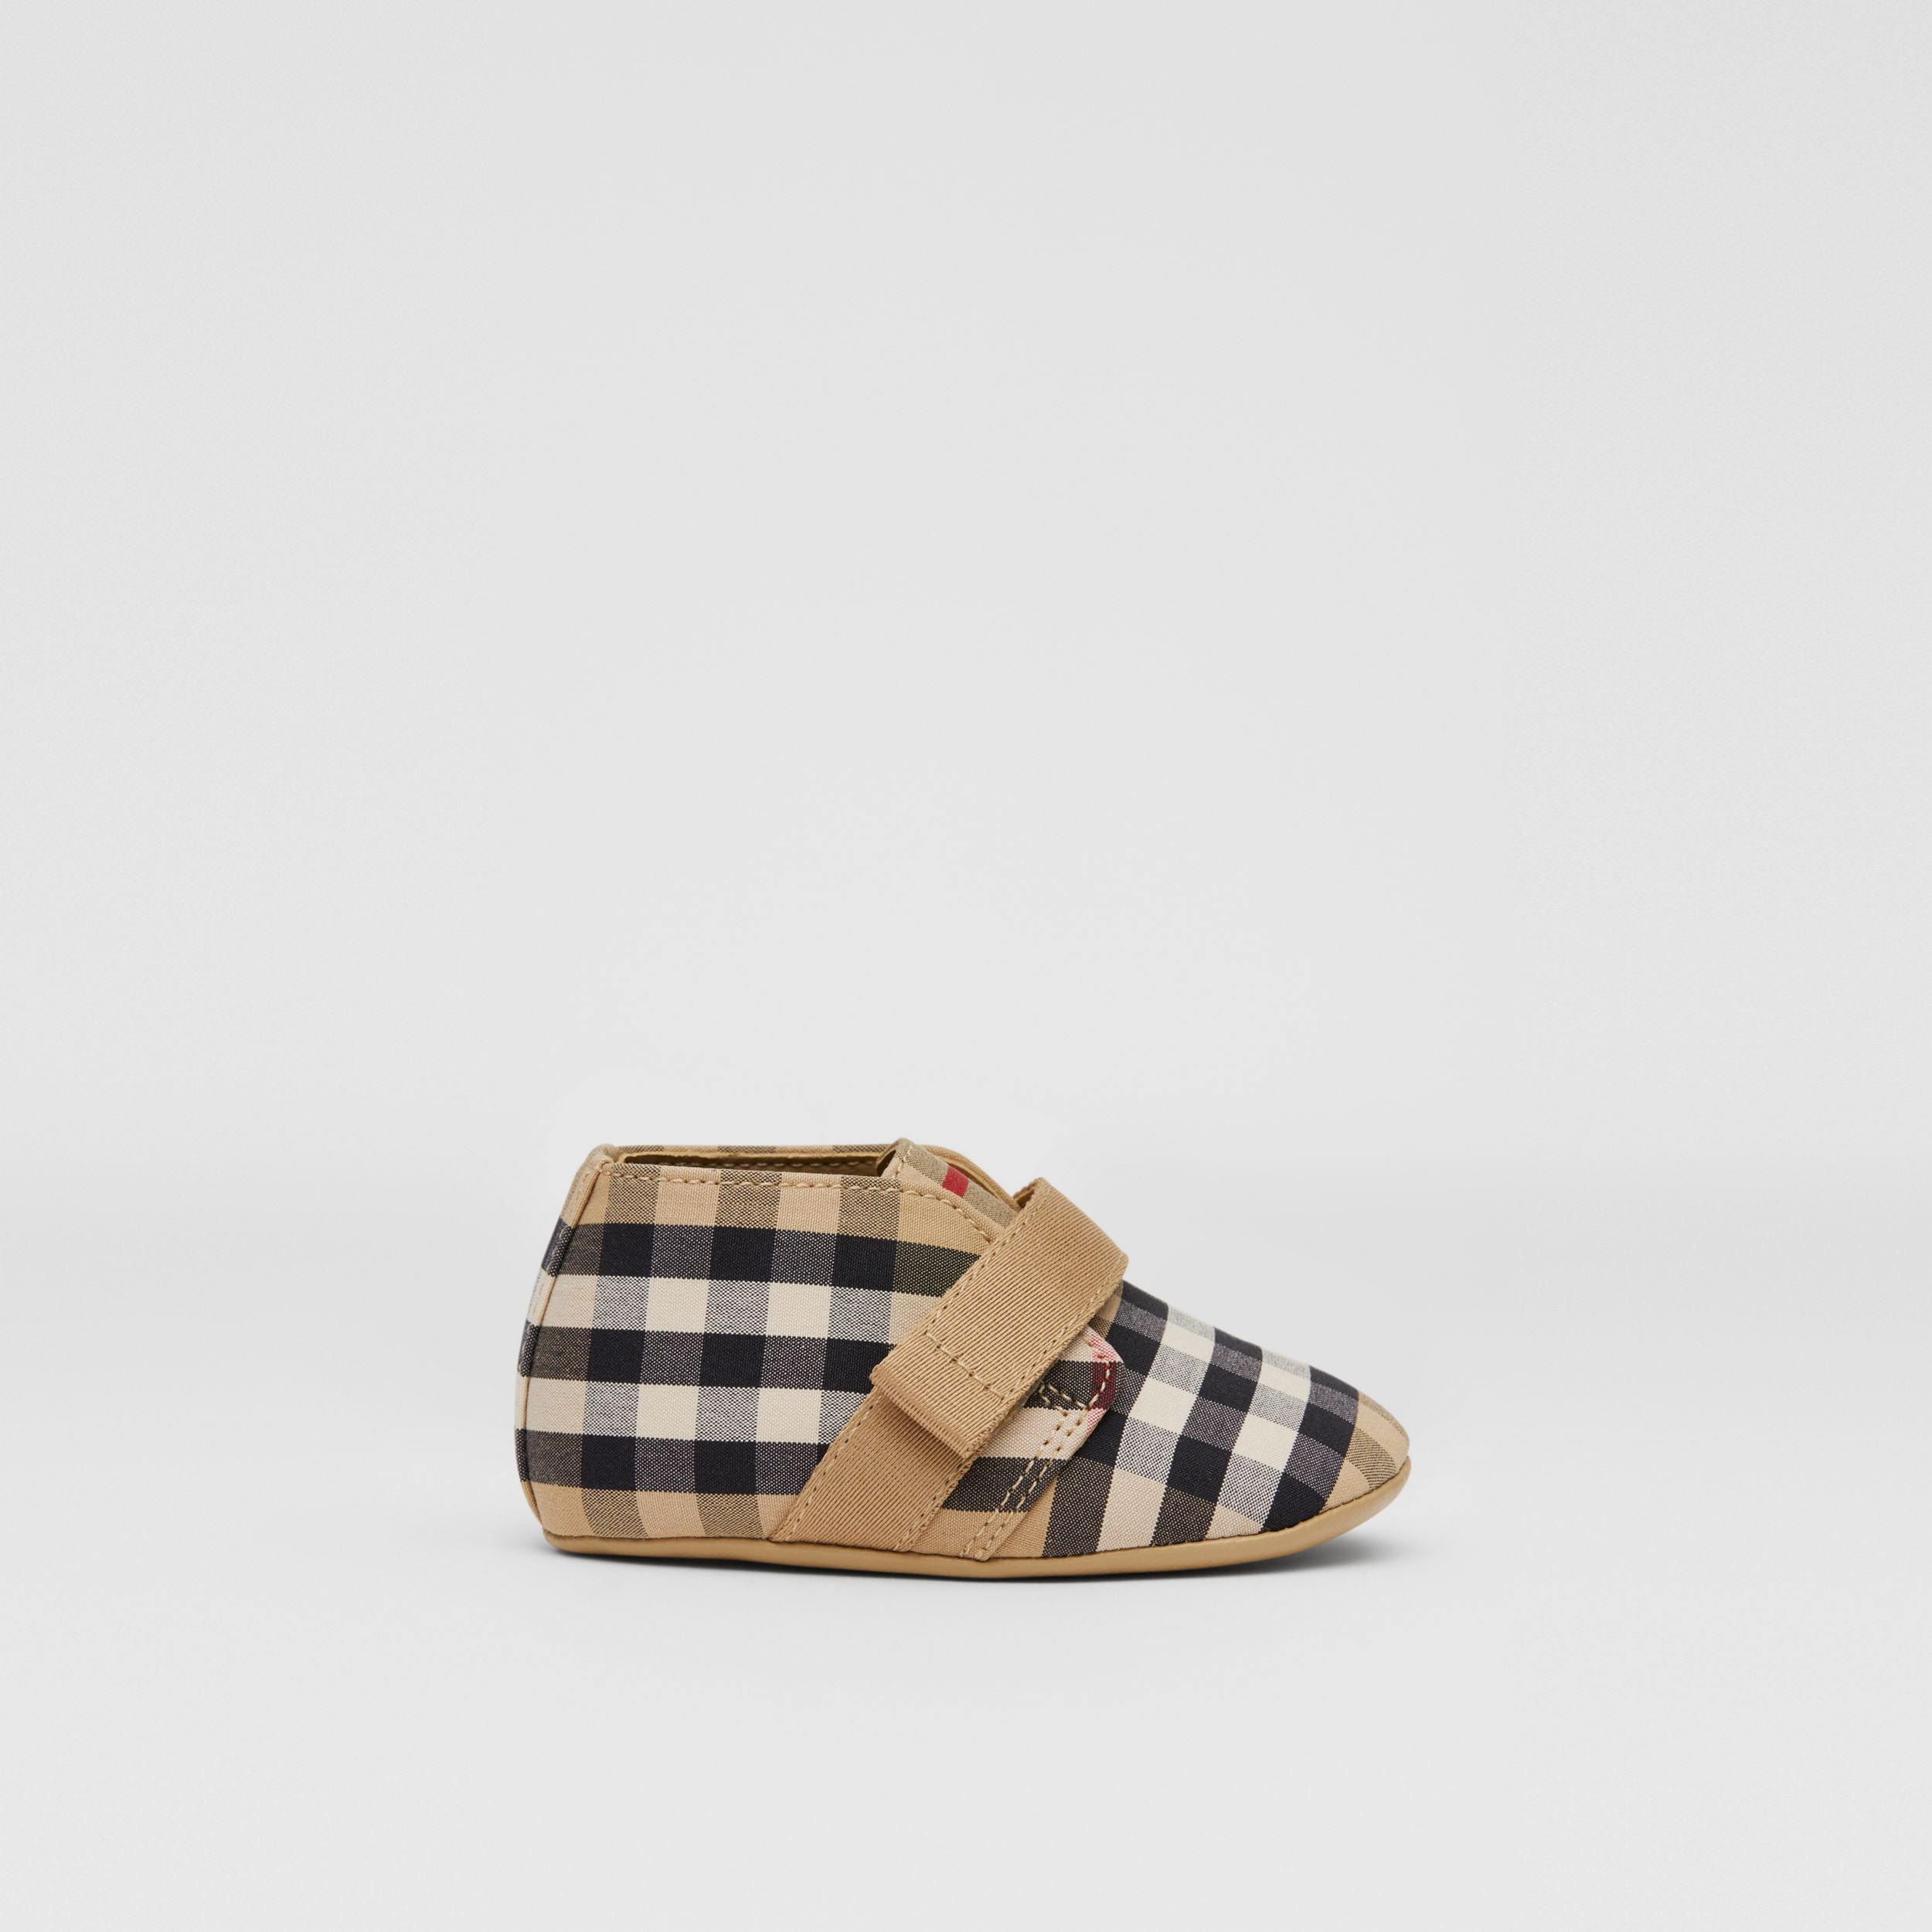 Vintage Check Cotton Booties in Archive Beige - Children | Burberry - 4